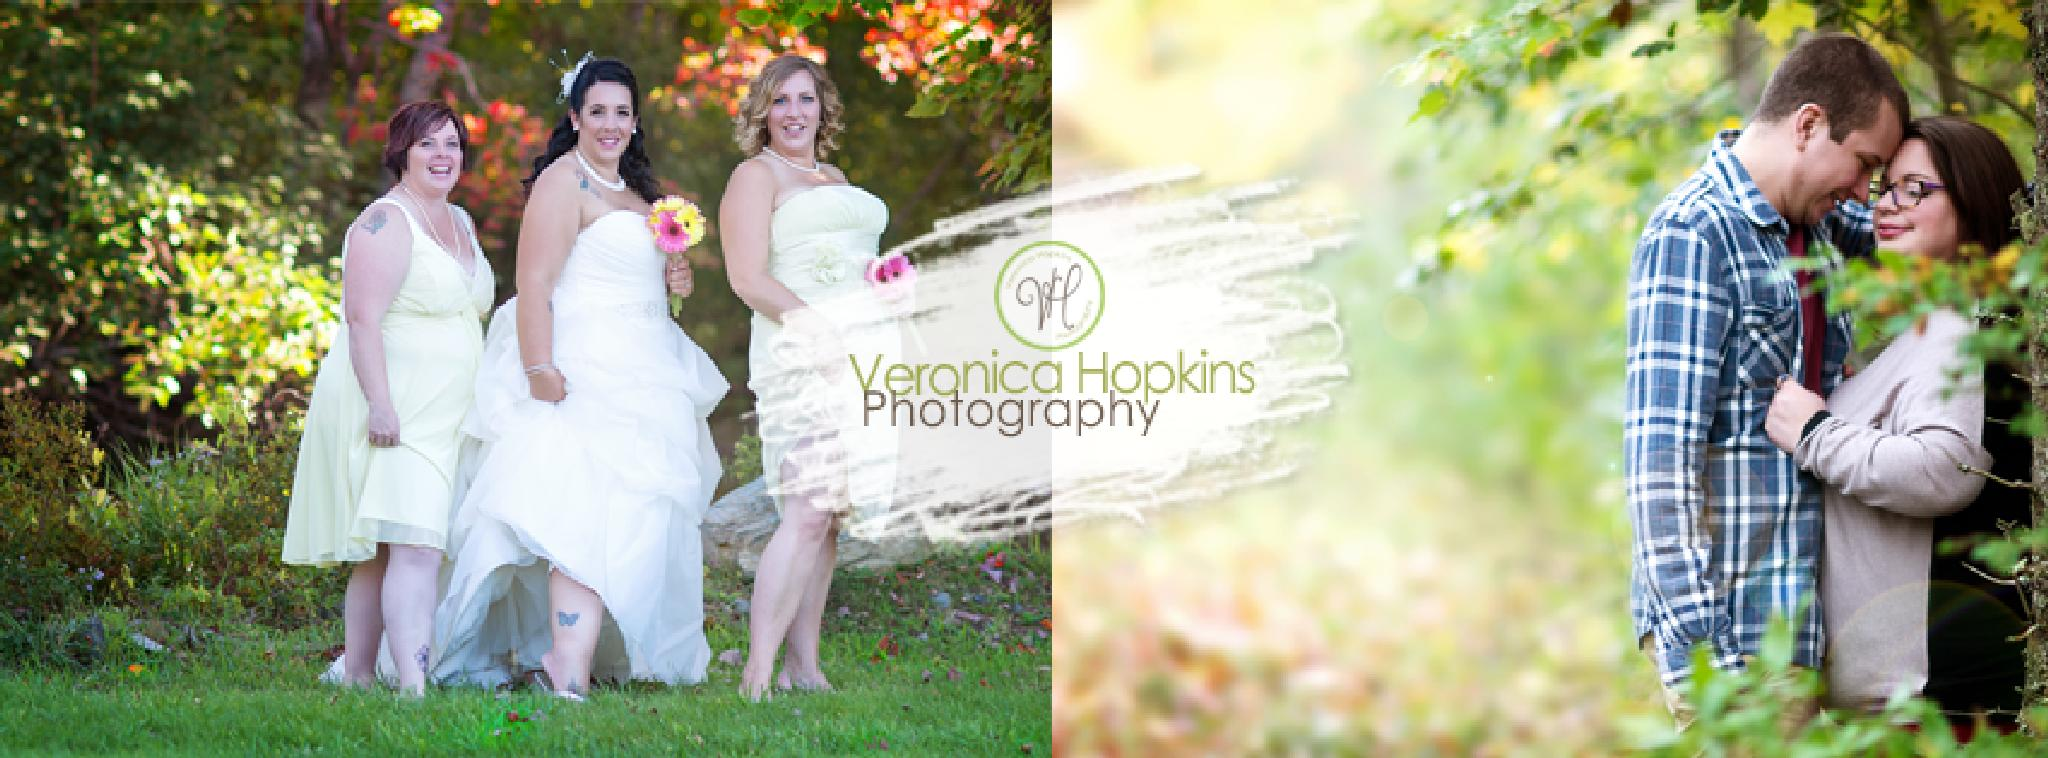 FacebookCoverPhoto by veronicahopkinphoto